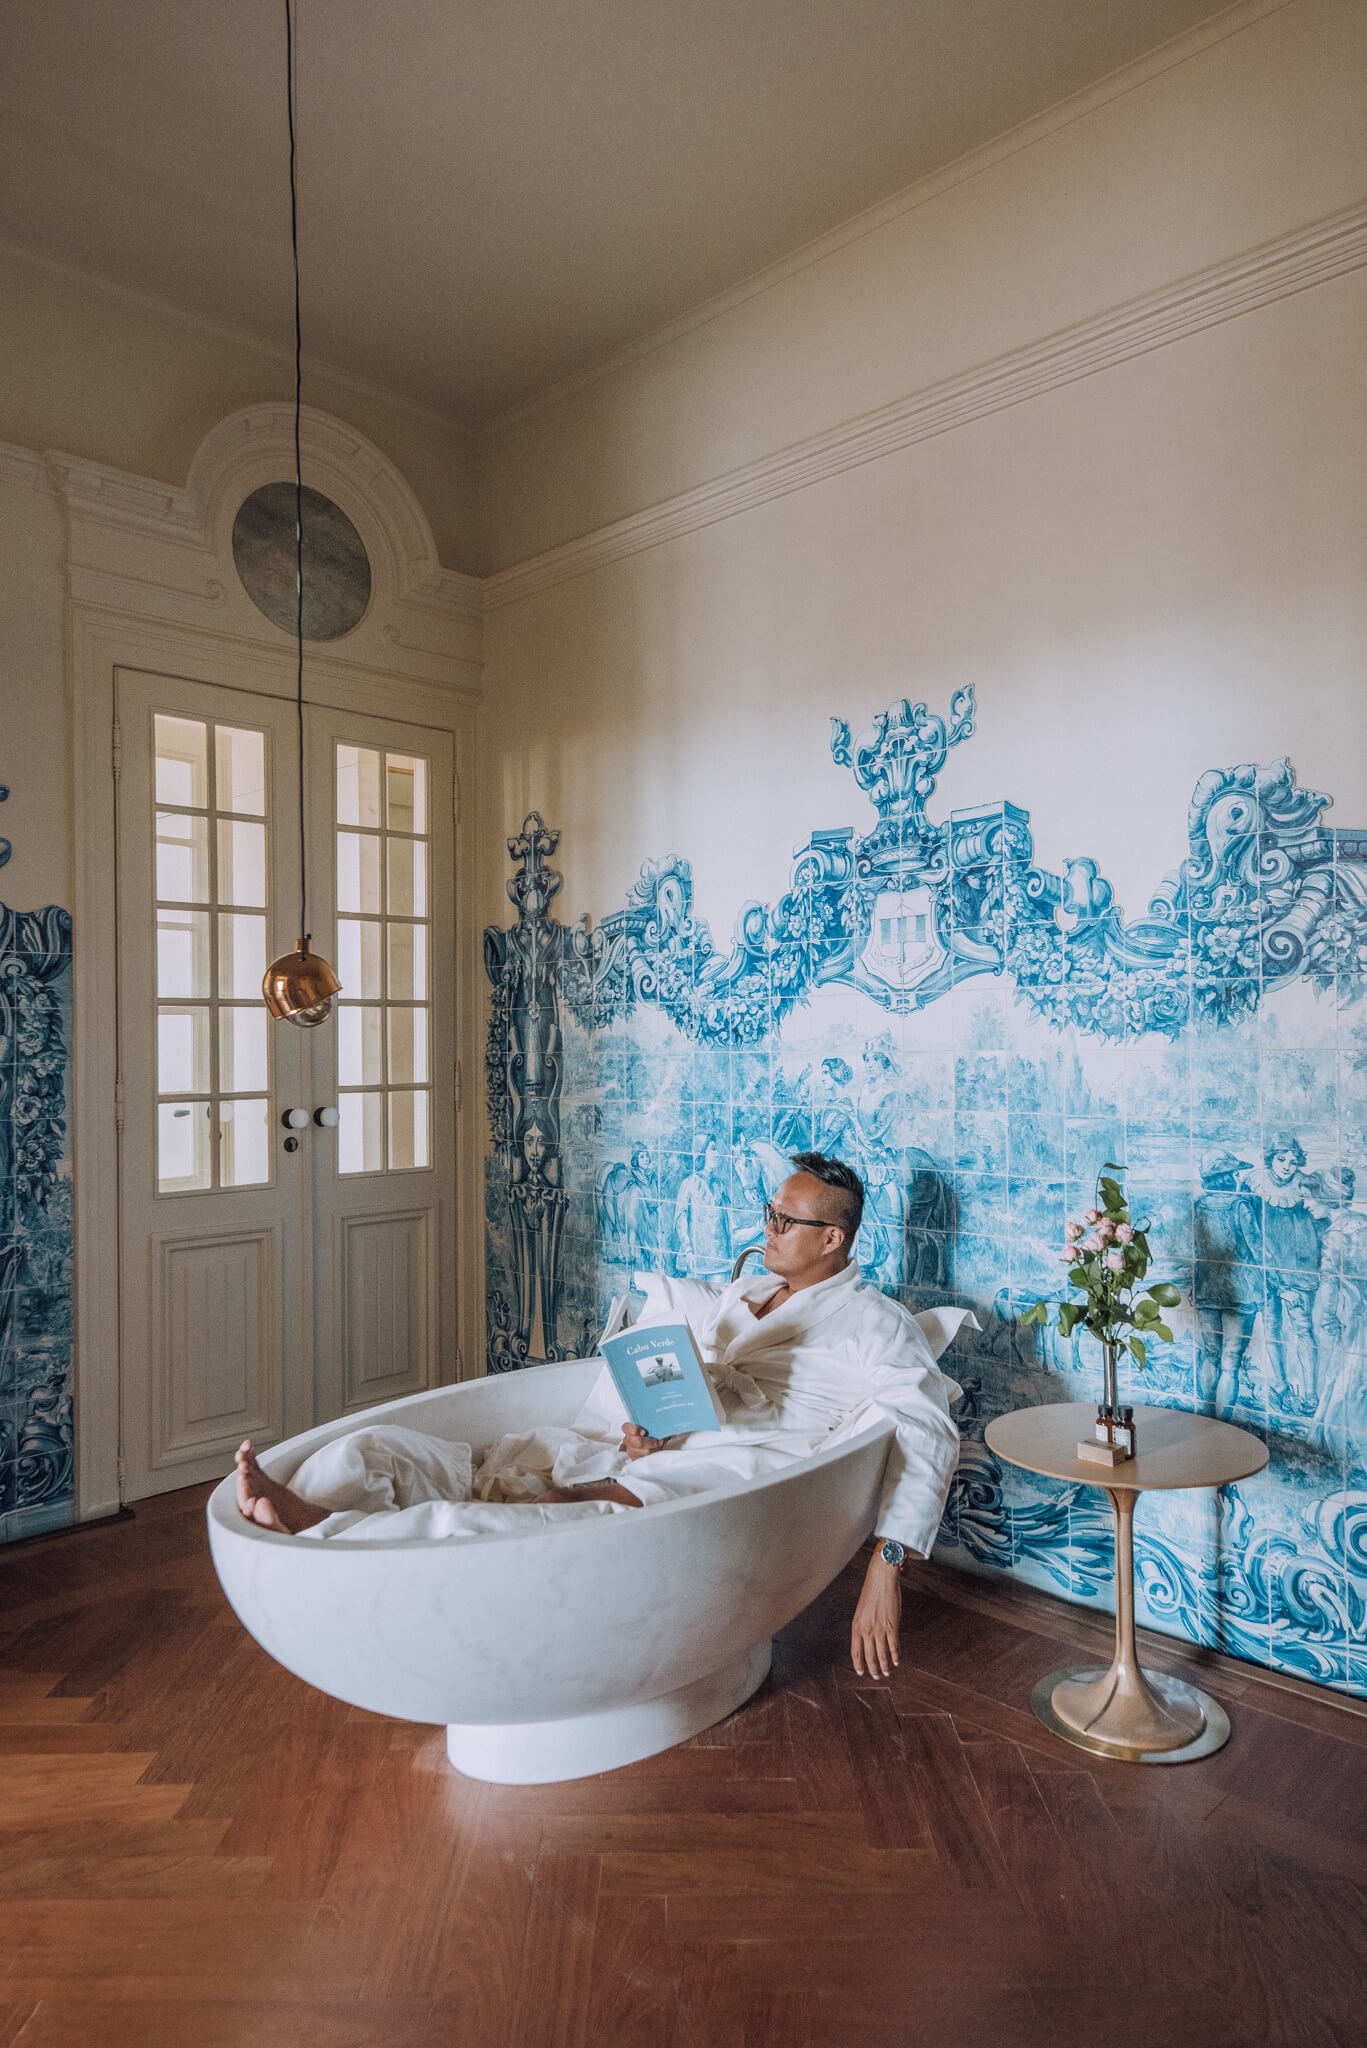 This bathtub we turned into a reading area was surprisingly comfortable!